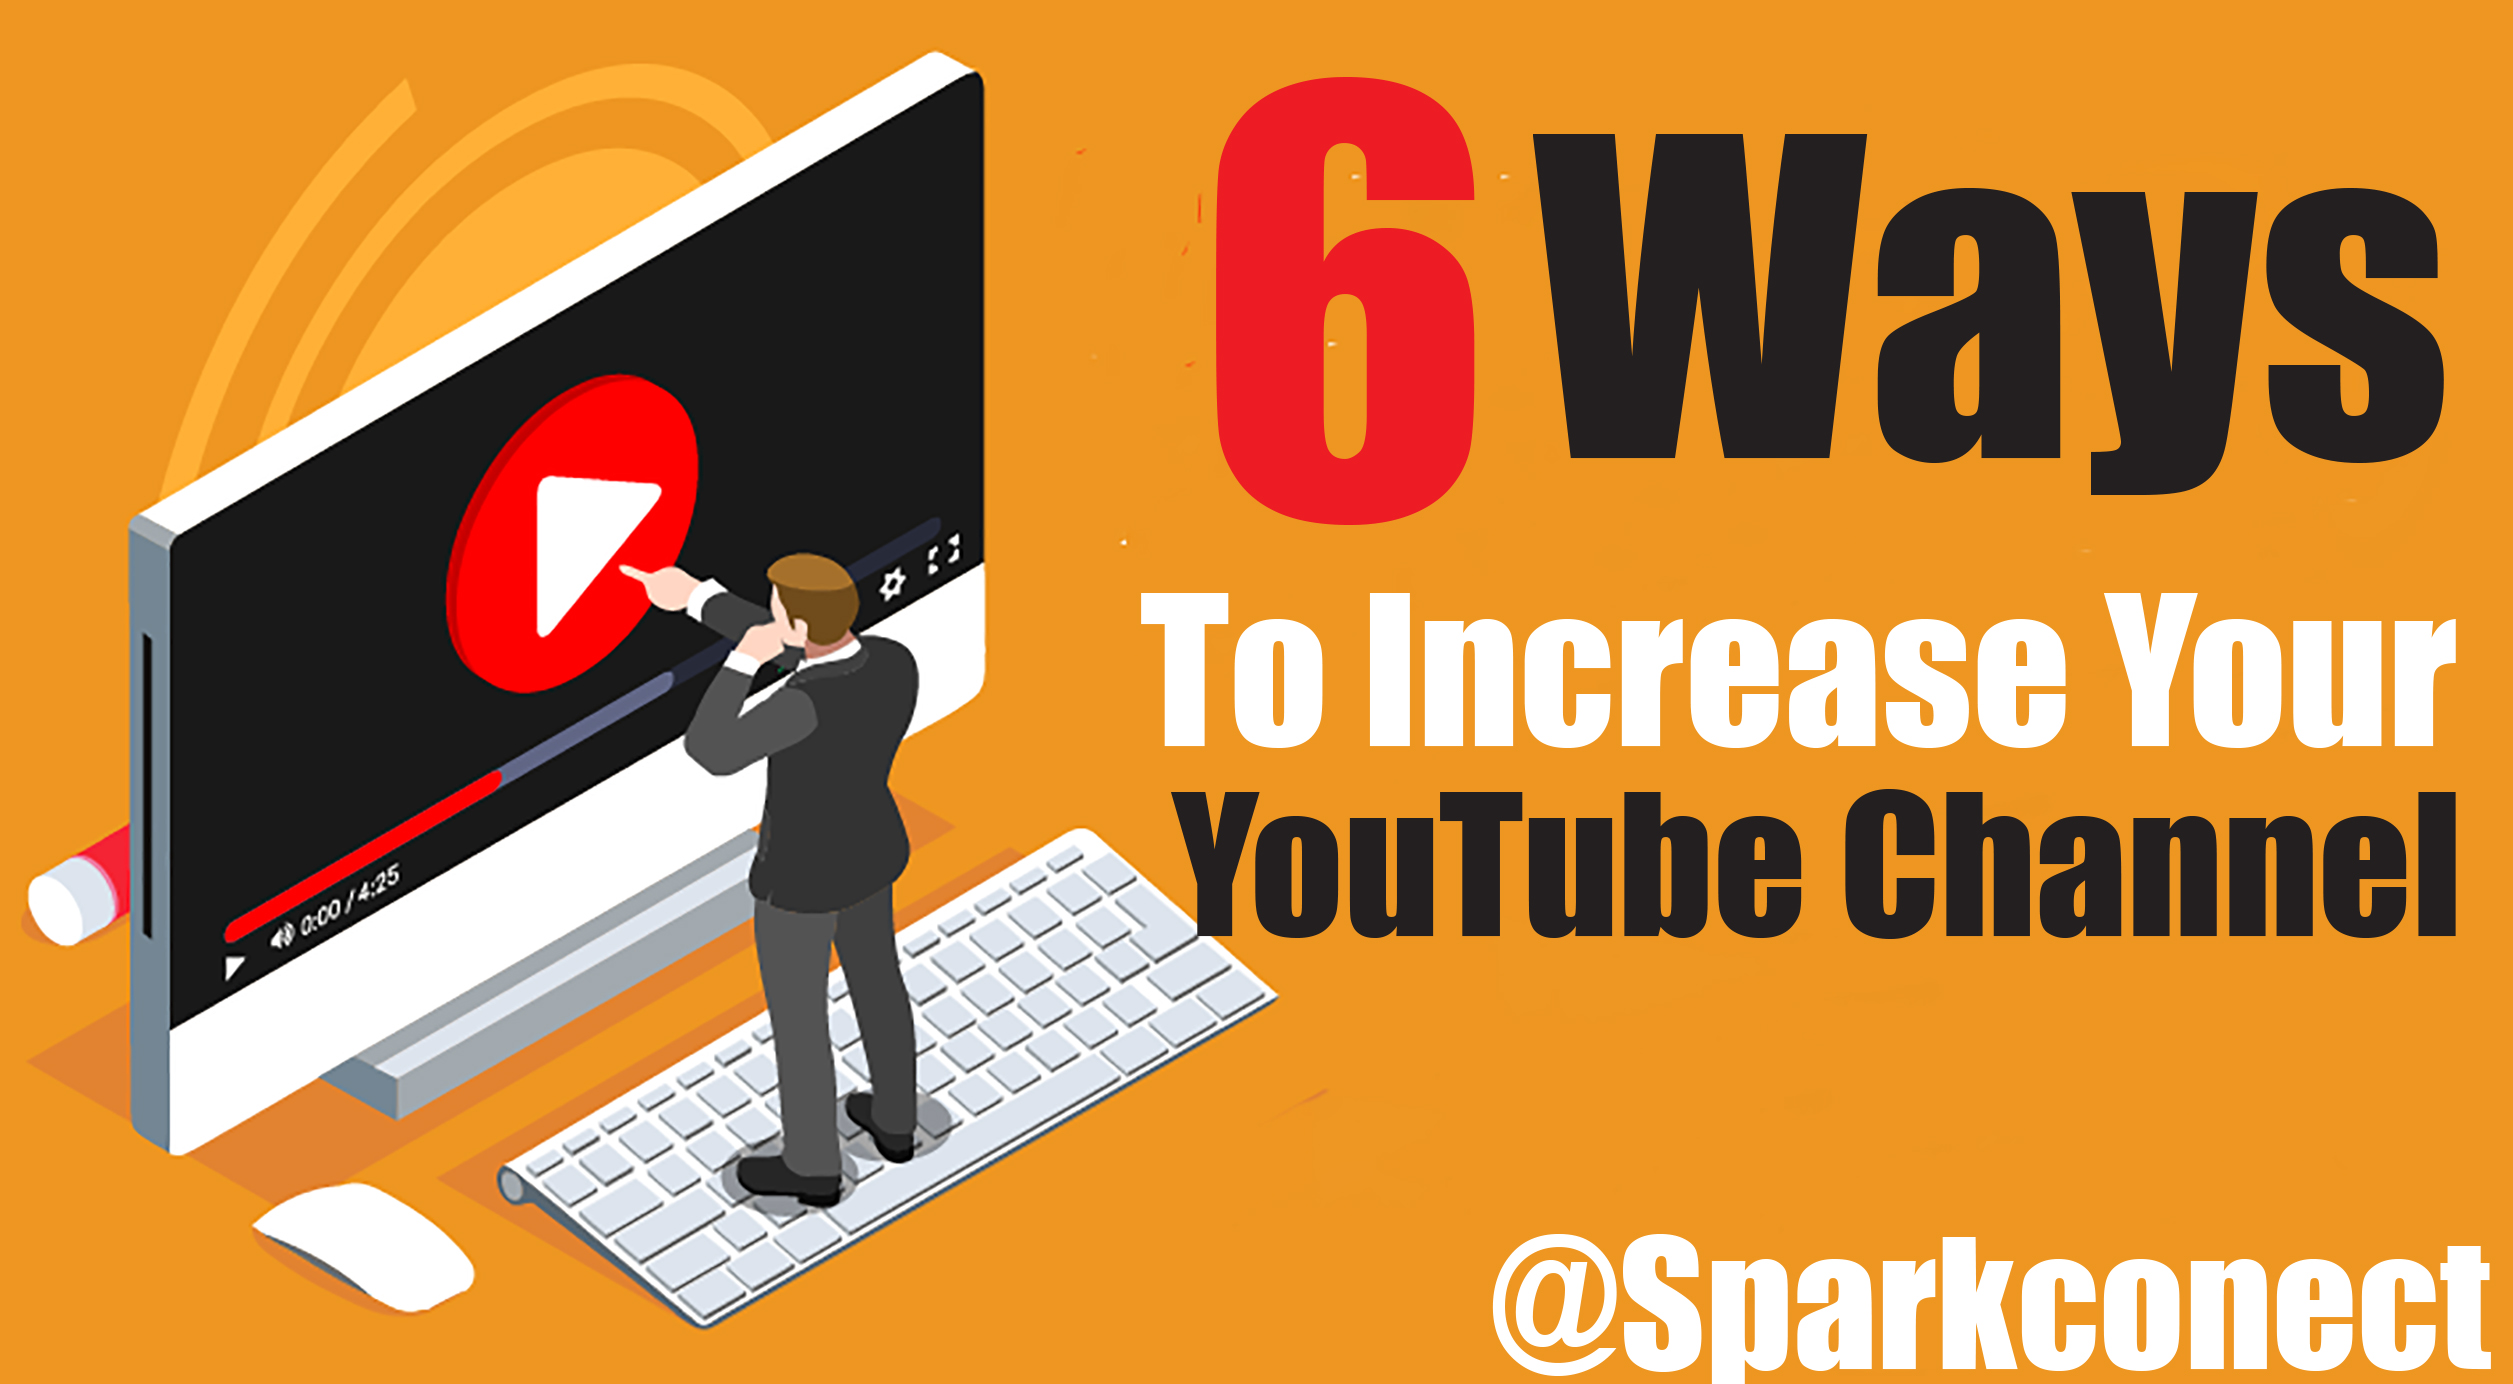 6 Ways to Increase Your YouTube Channel